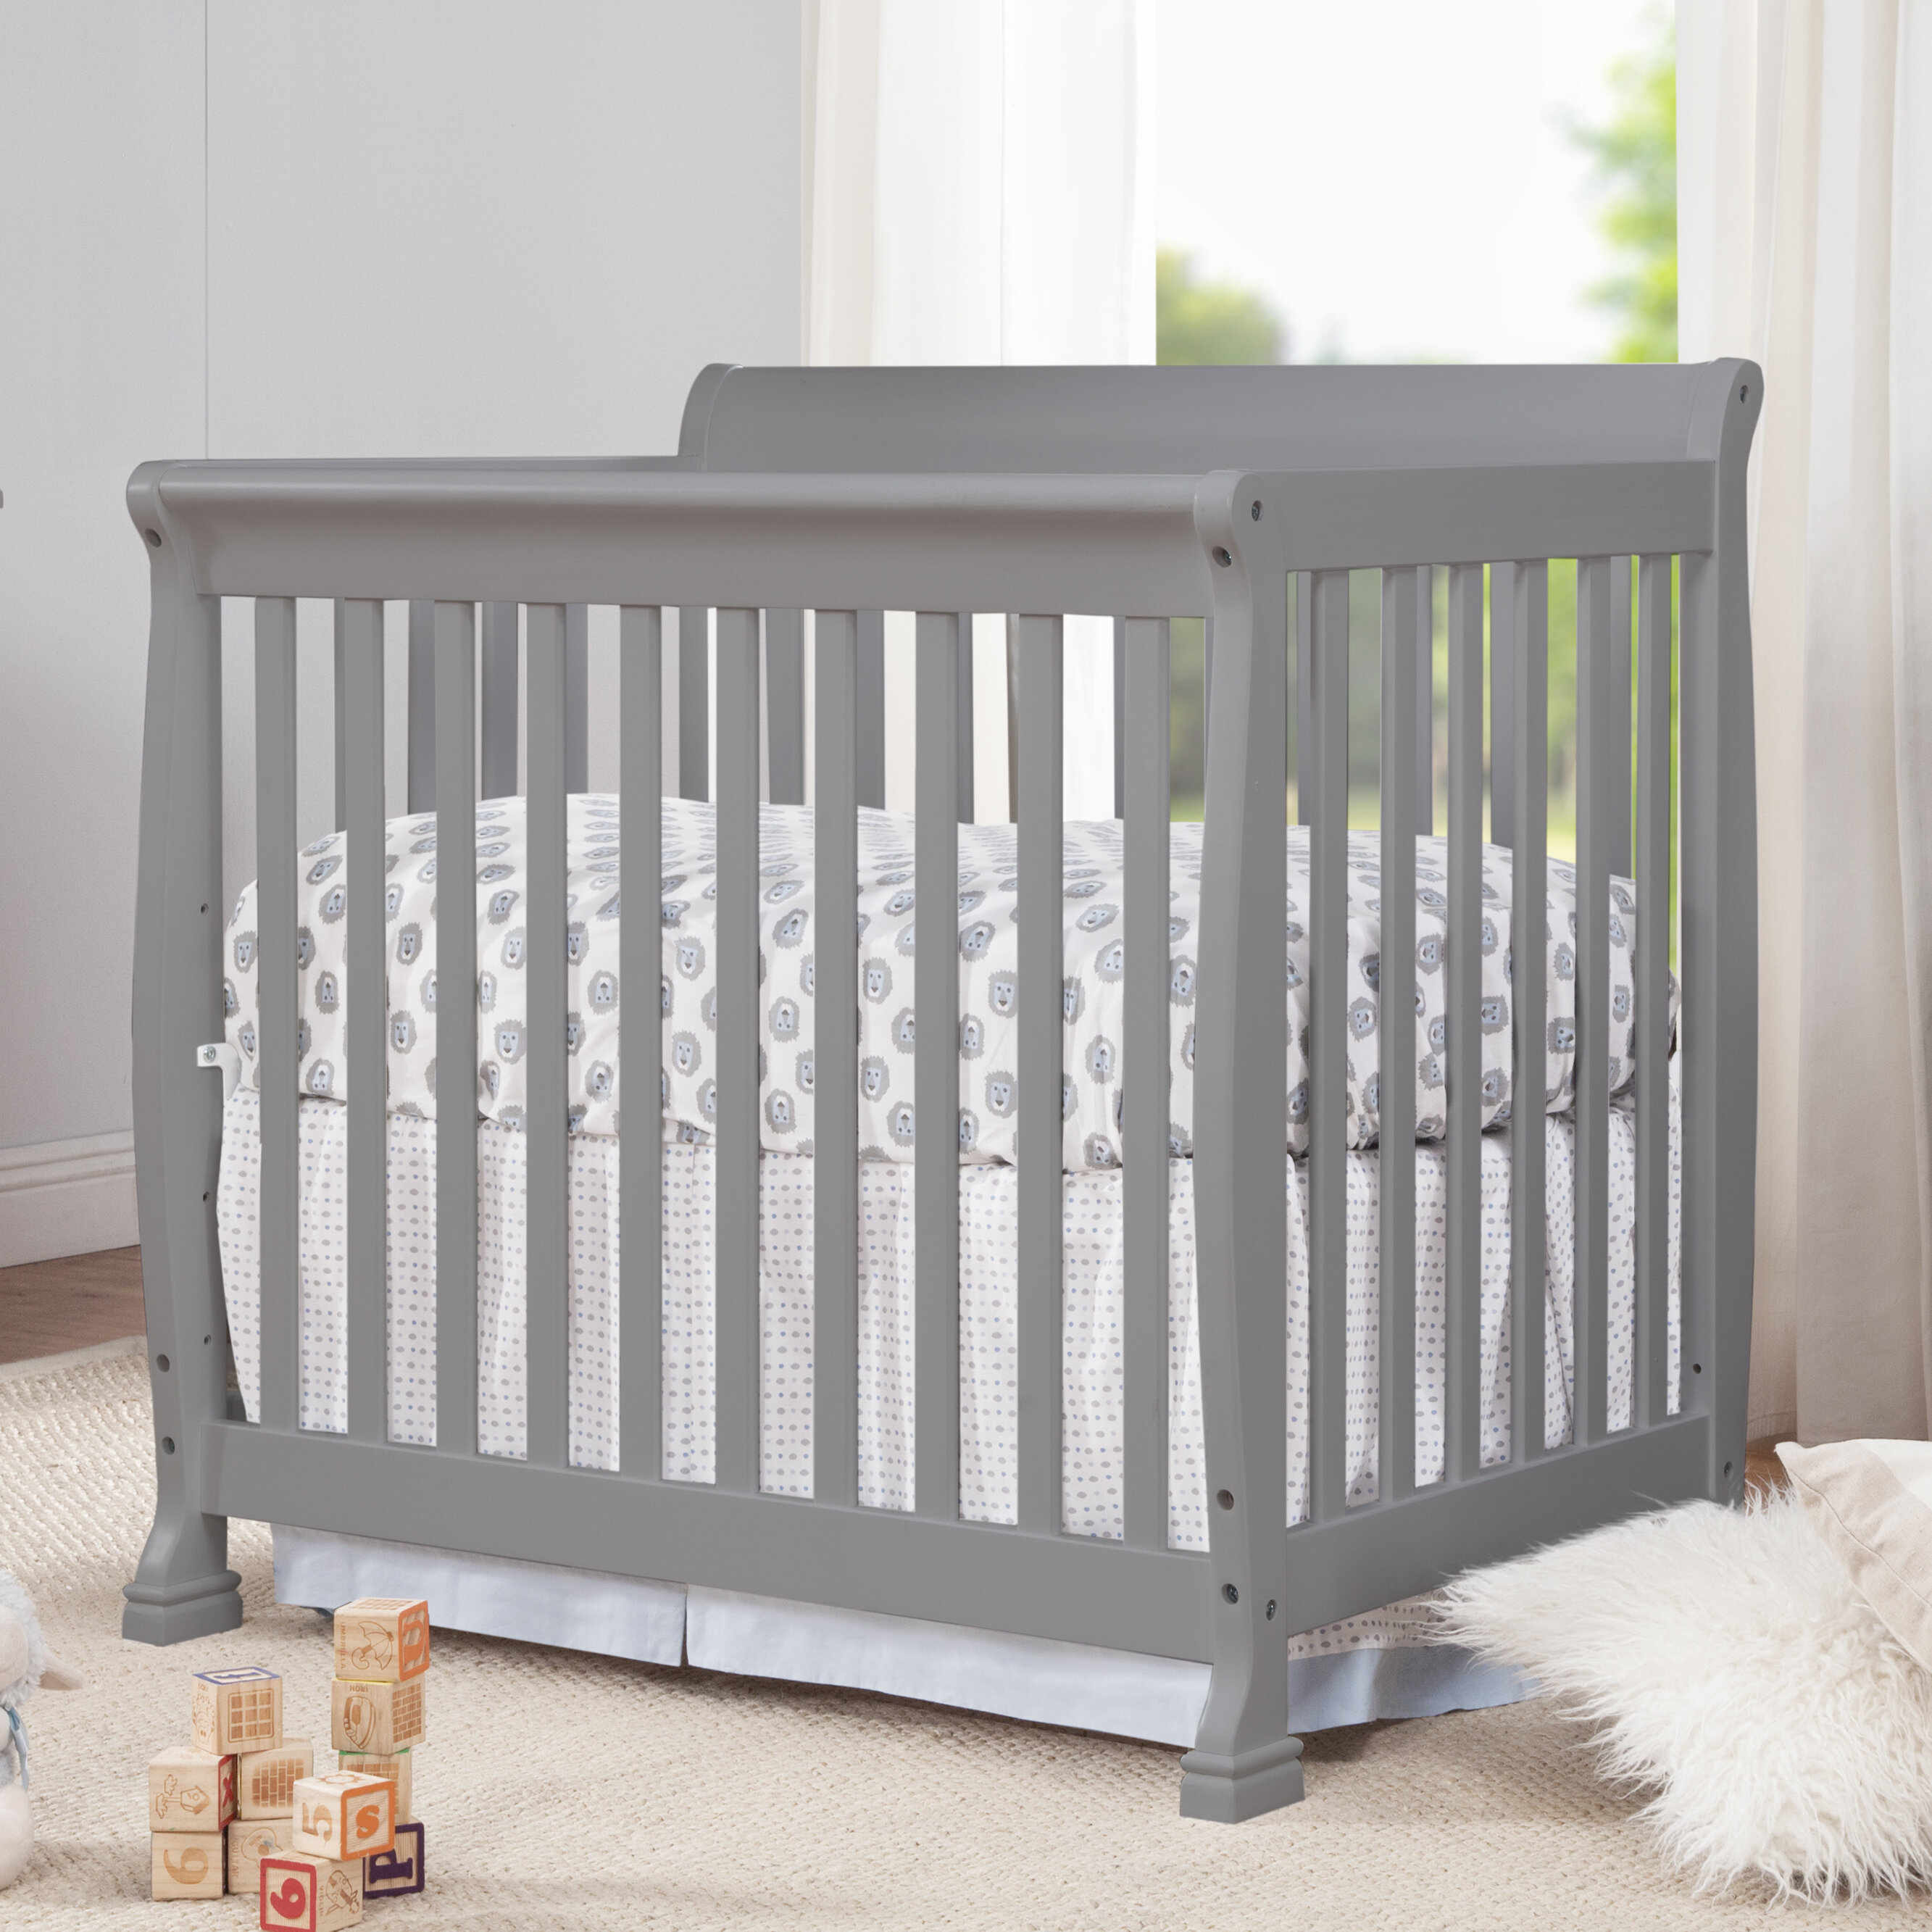 crib convertible today cribs piper garden mini dream shipping espresso in overstock product free home me on